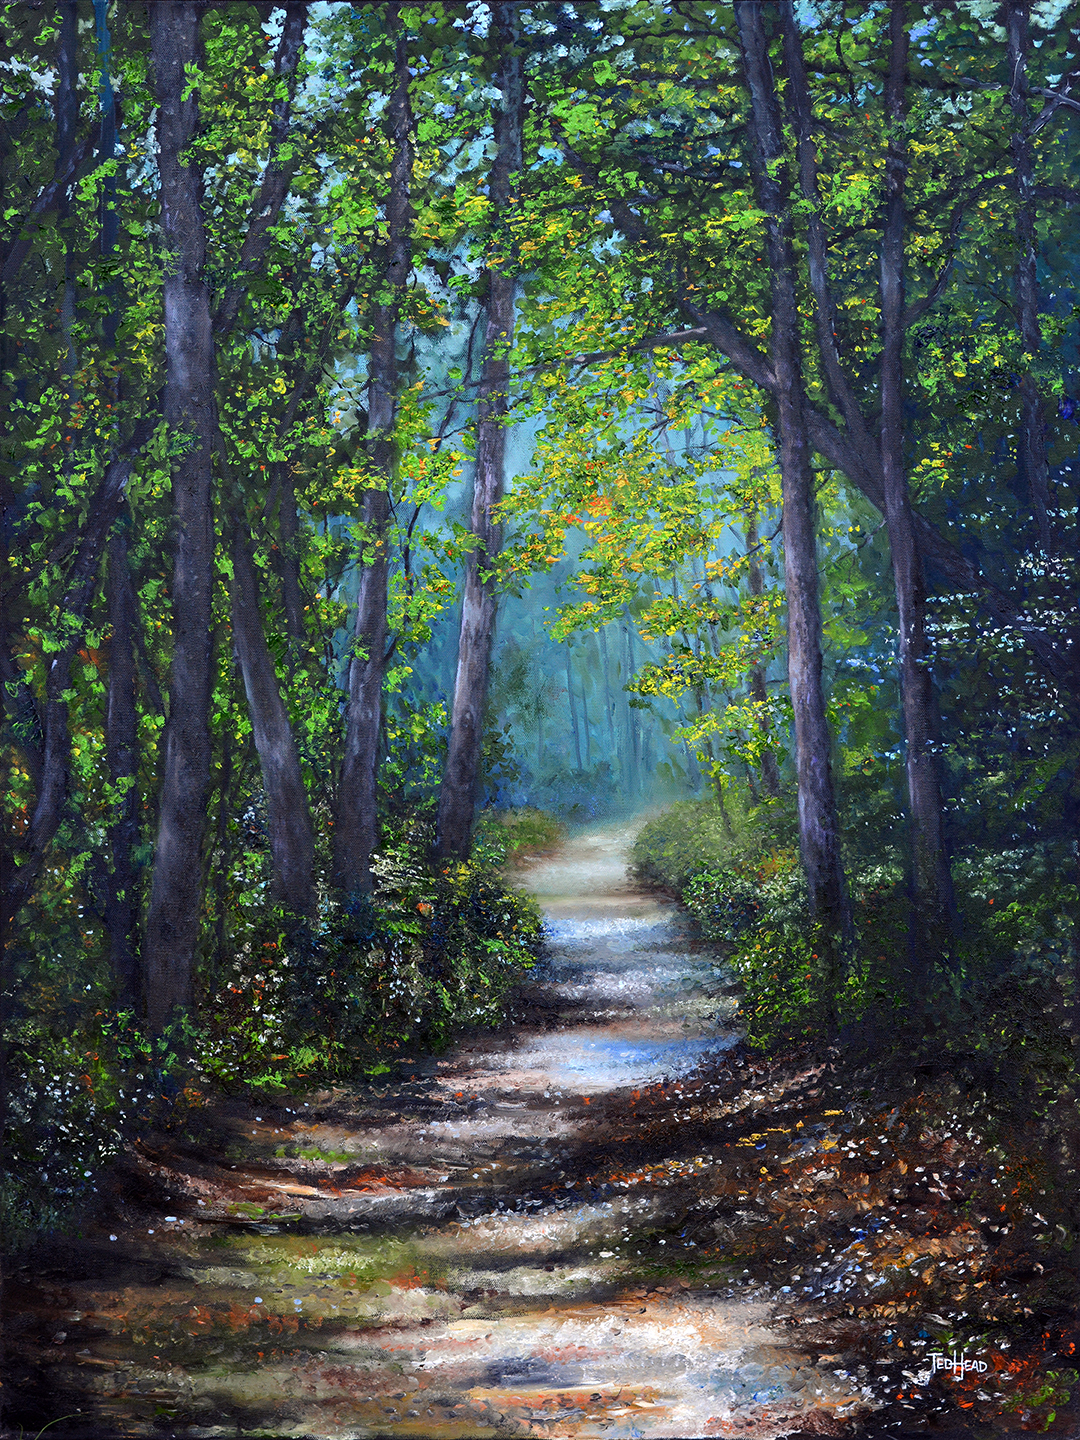 'Passages', oil on canvas by Ted Head ($3,600) ⎼ 'We're all on a journey, and none of us knows what lies just around the corner. Because of these unsettled times, I painted a series of peaceful scenes depicting trails and paths, allowing the viewer to surround themselves with the beauty of the unknown, and moving toward what lies ahead.'